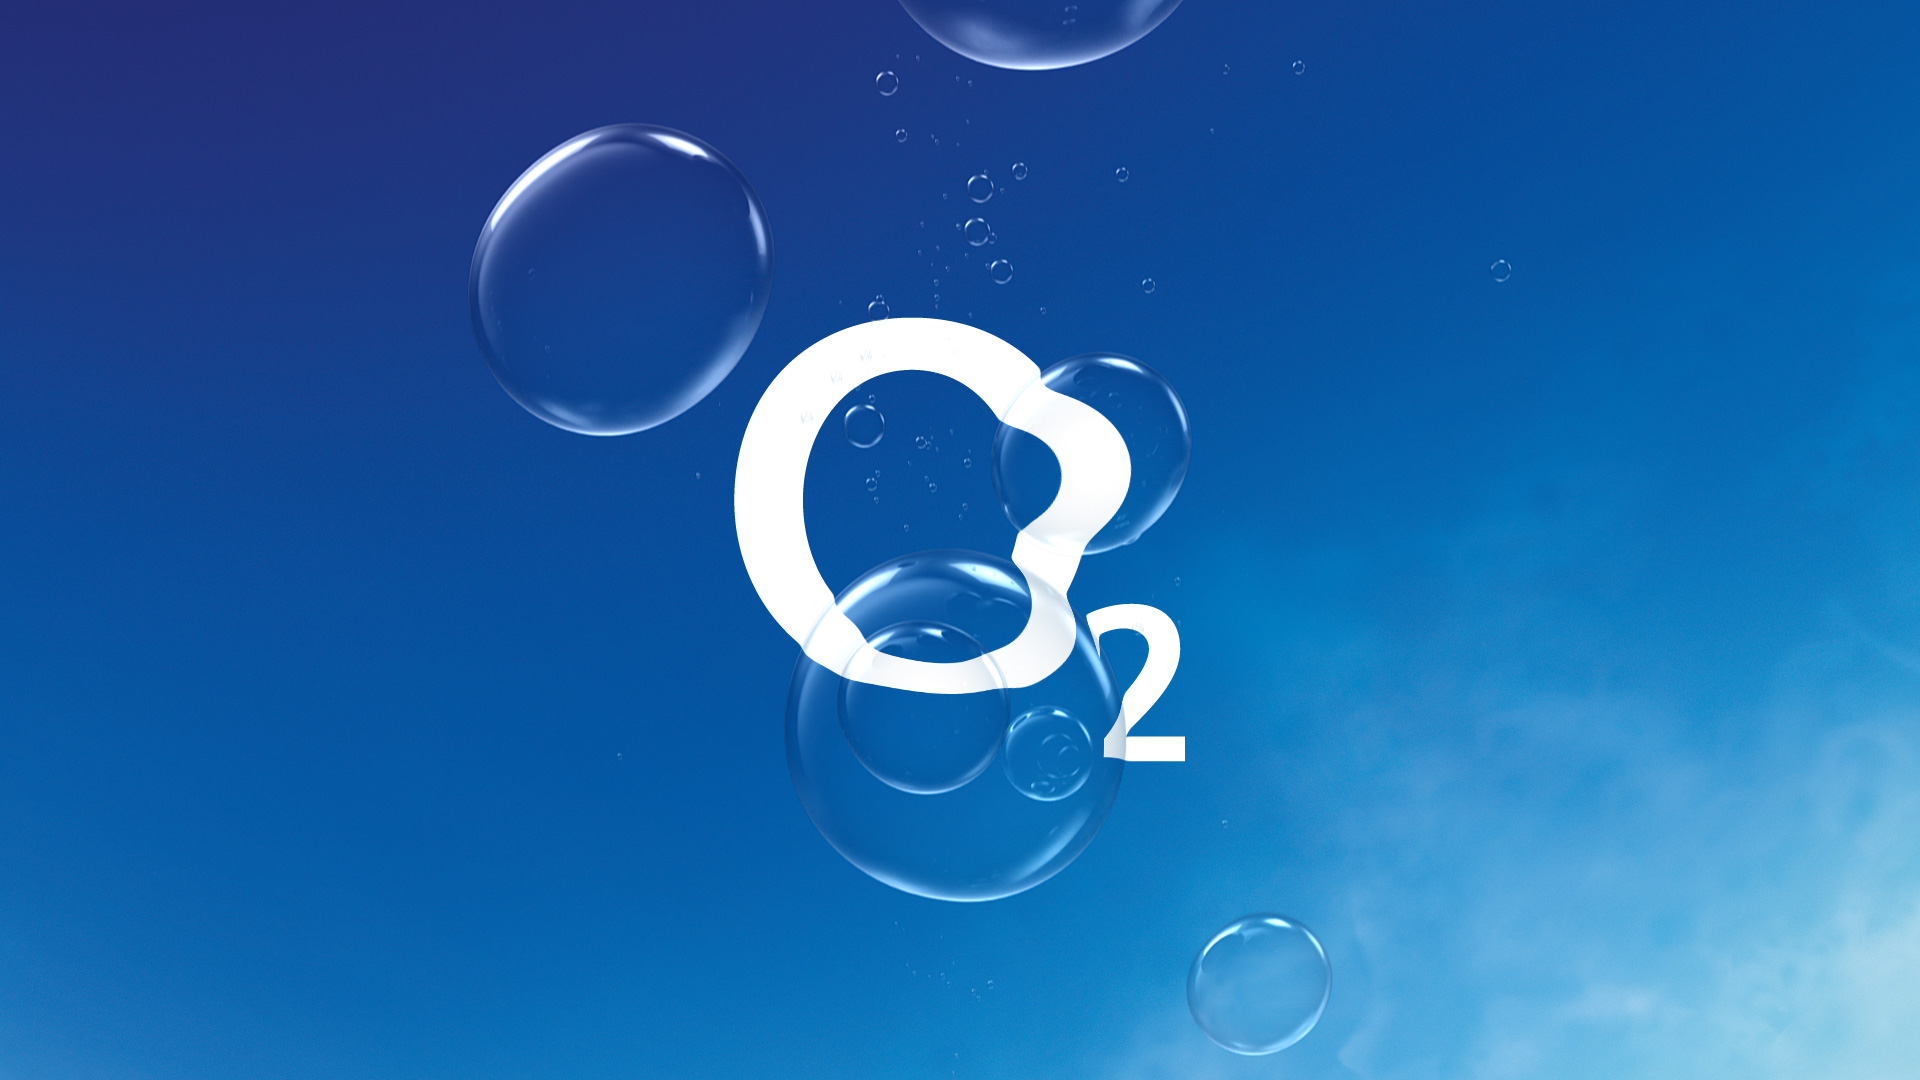 O2-bubble-3D-animations-16